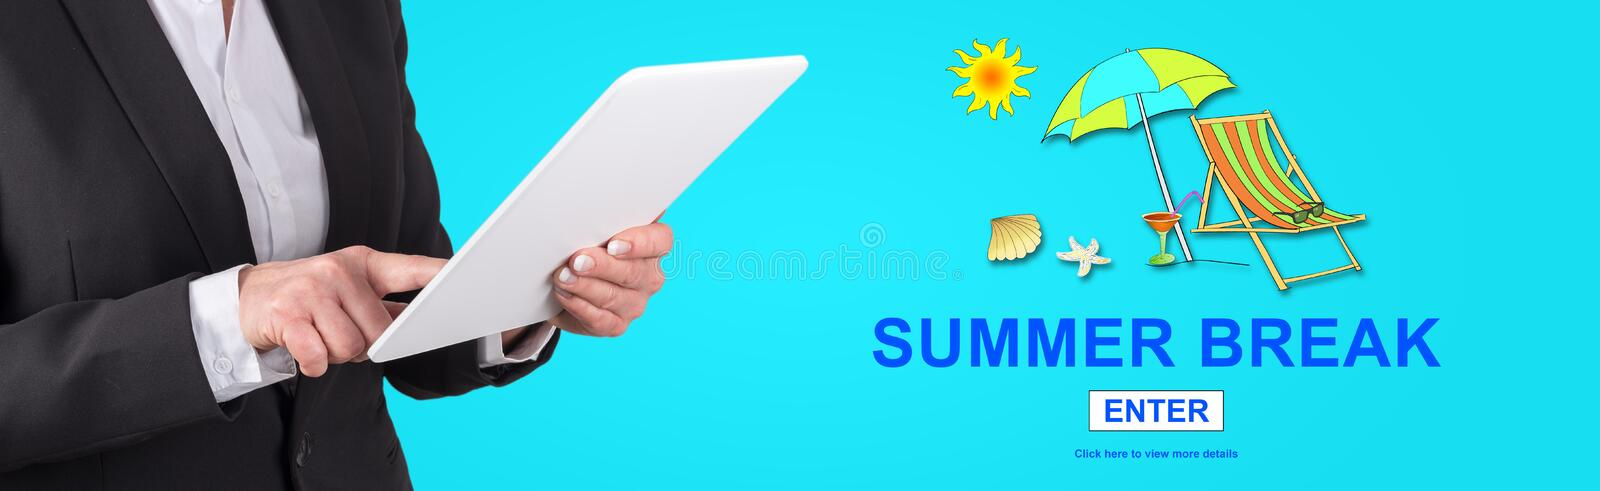 Concept of summer break. Woman using digital tablet with summer break concept on background stock photography